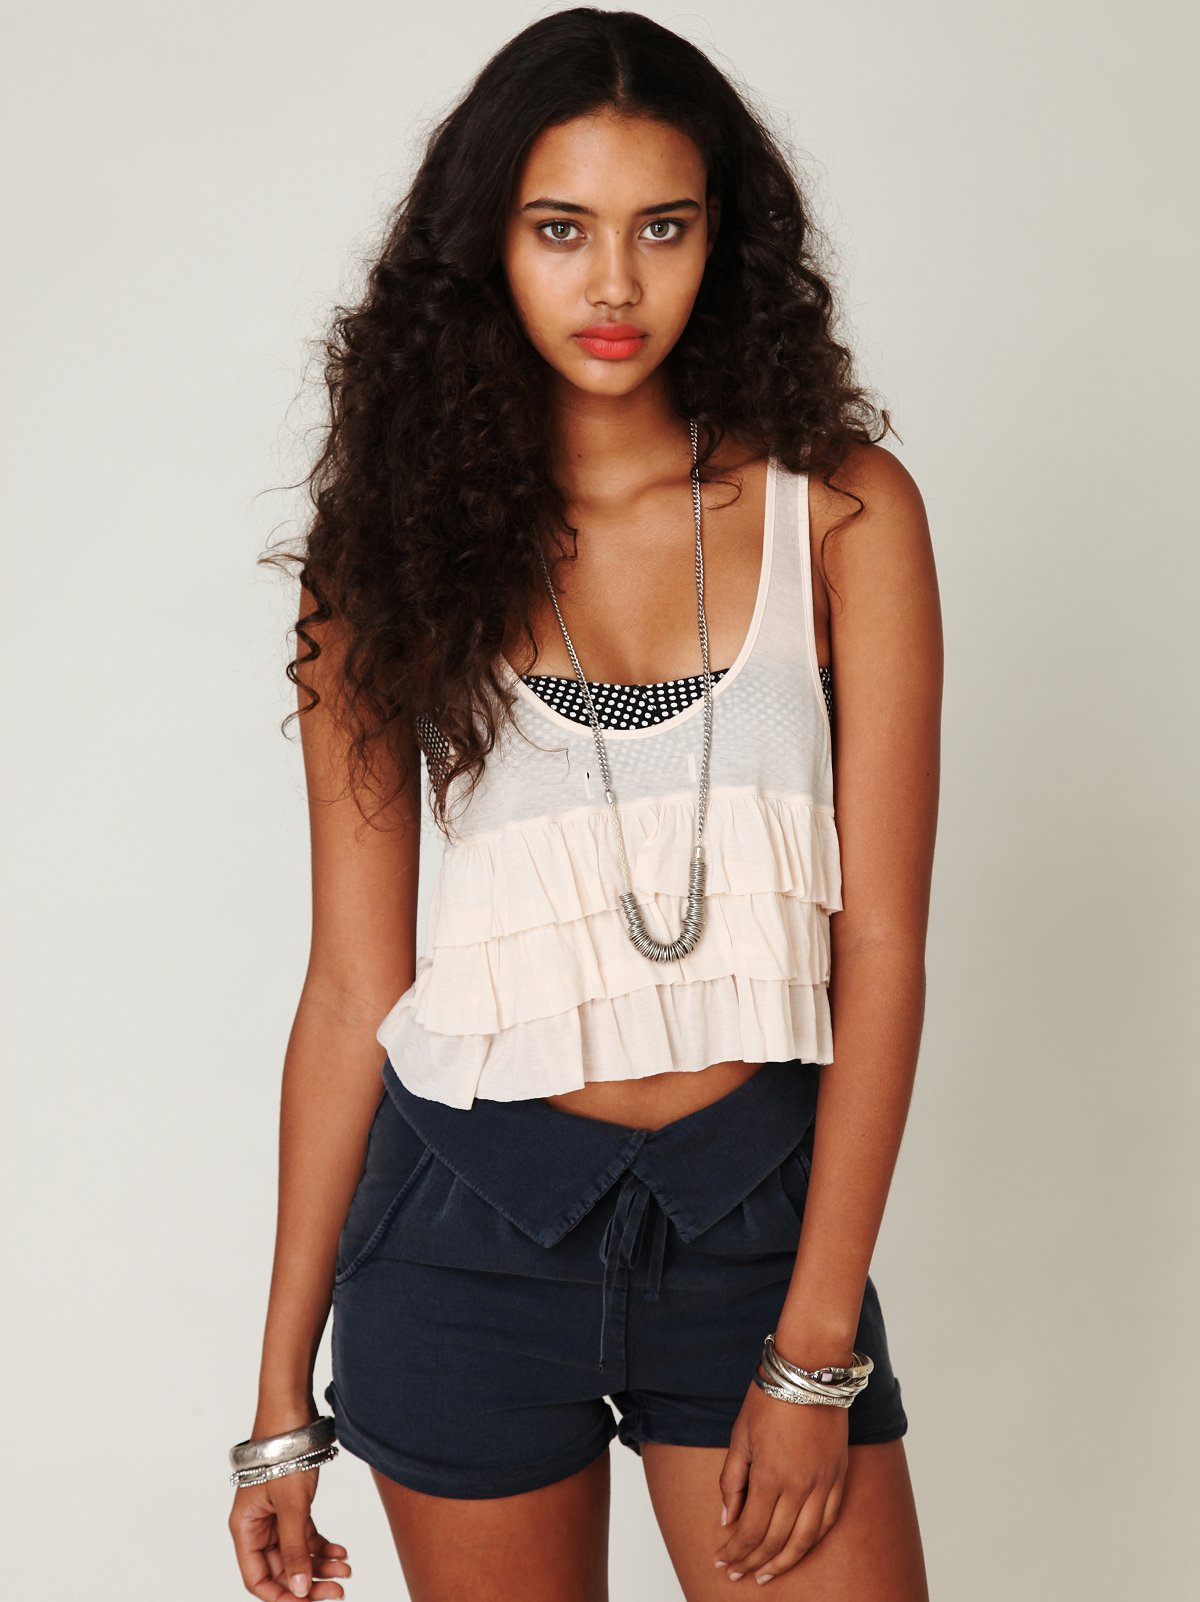 In the Crop Ruffle Top